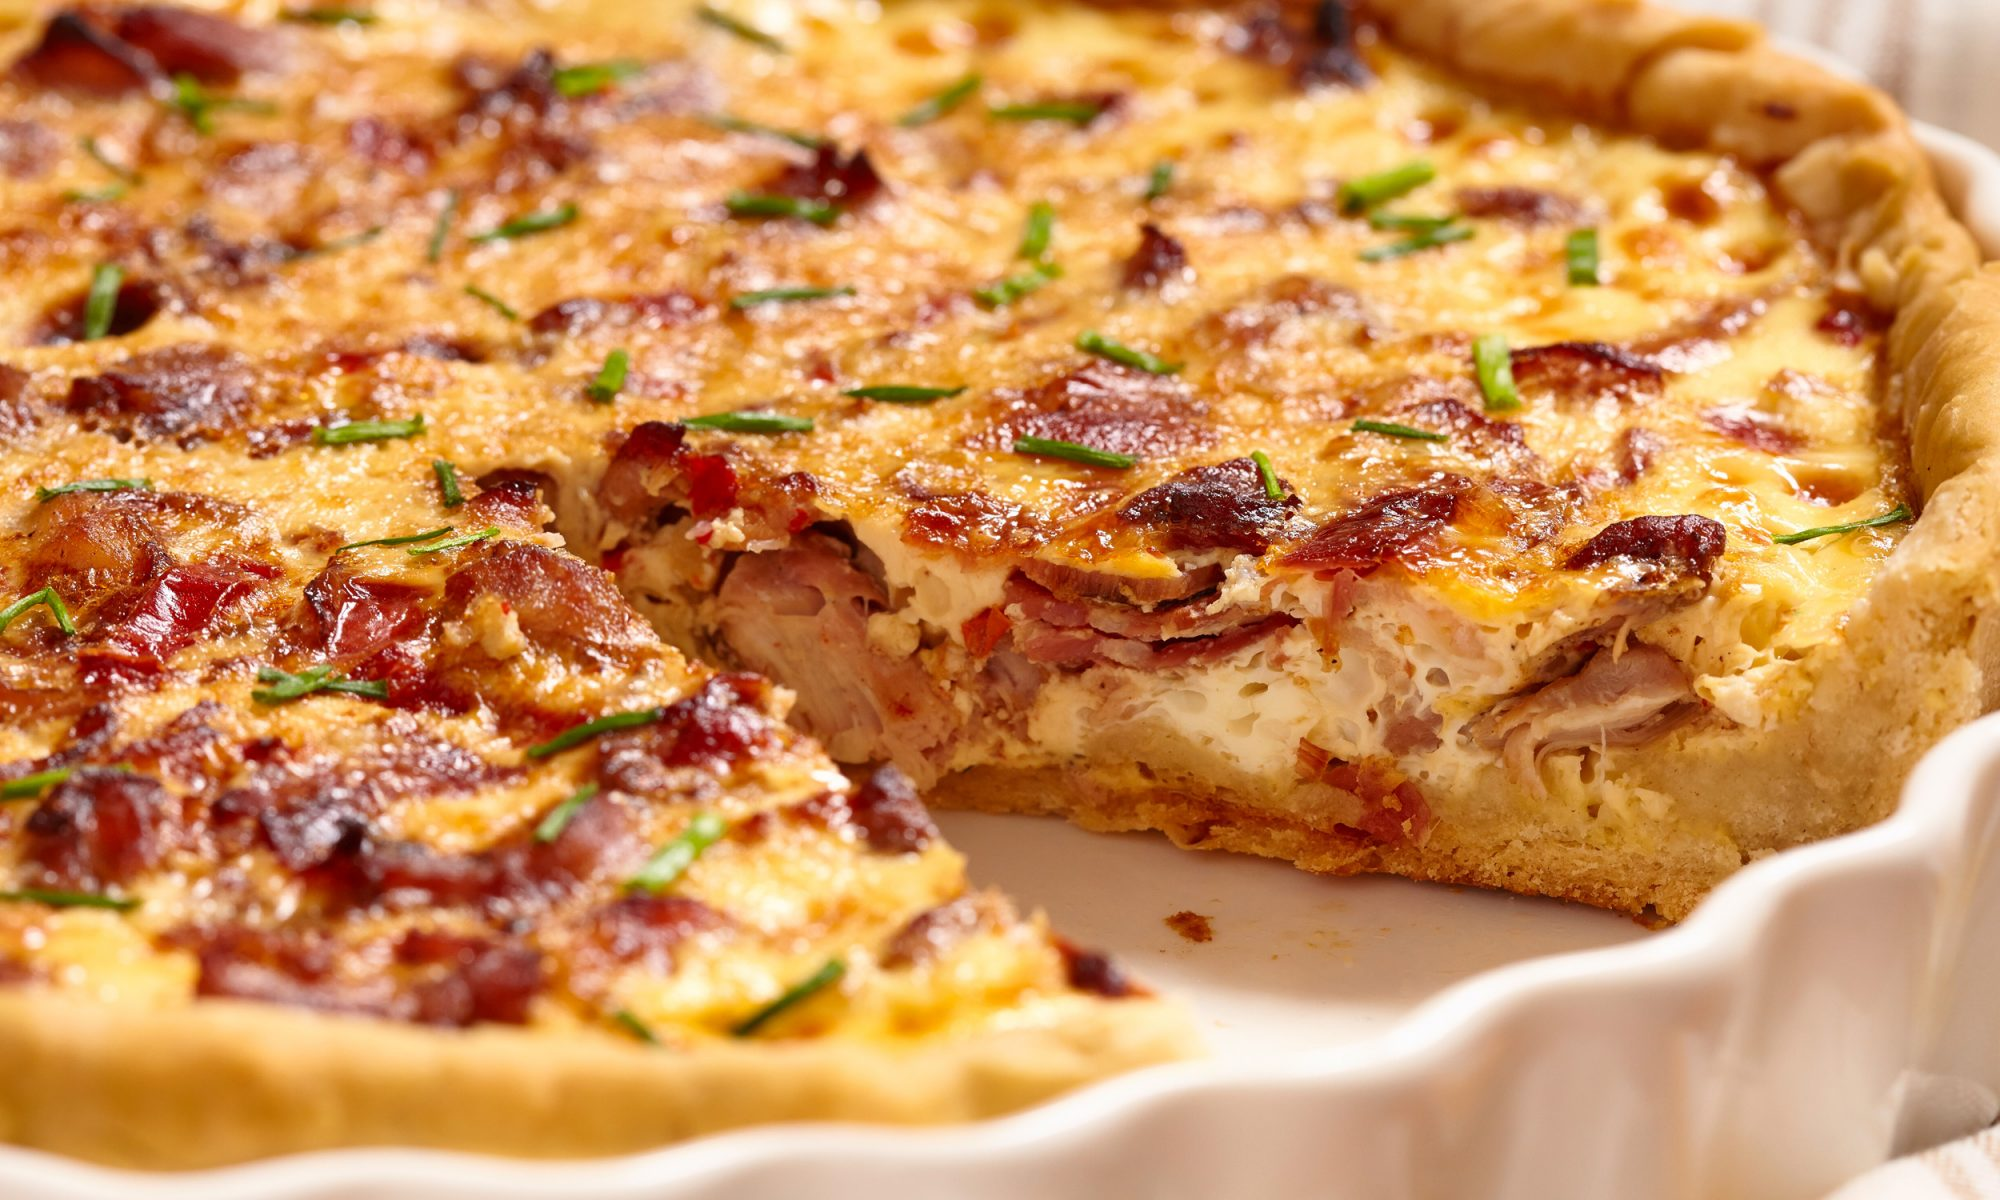 Even Egg Haters Will Like This Quiche